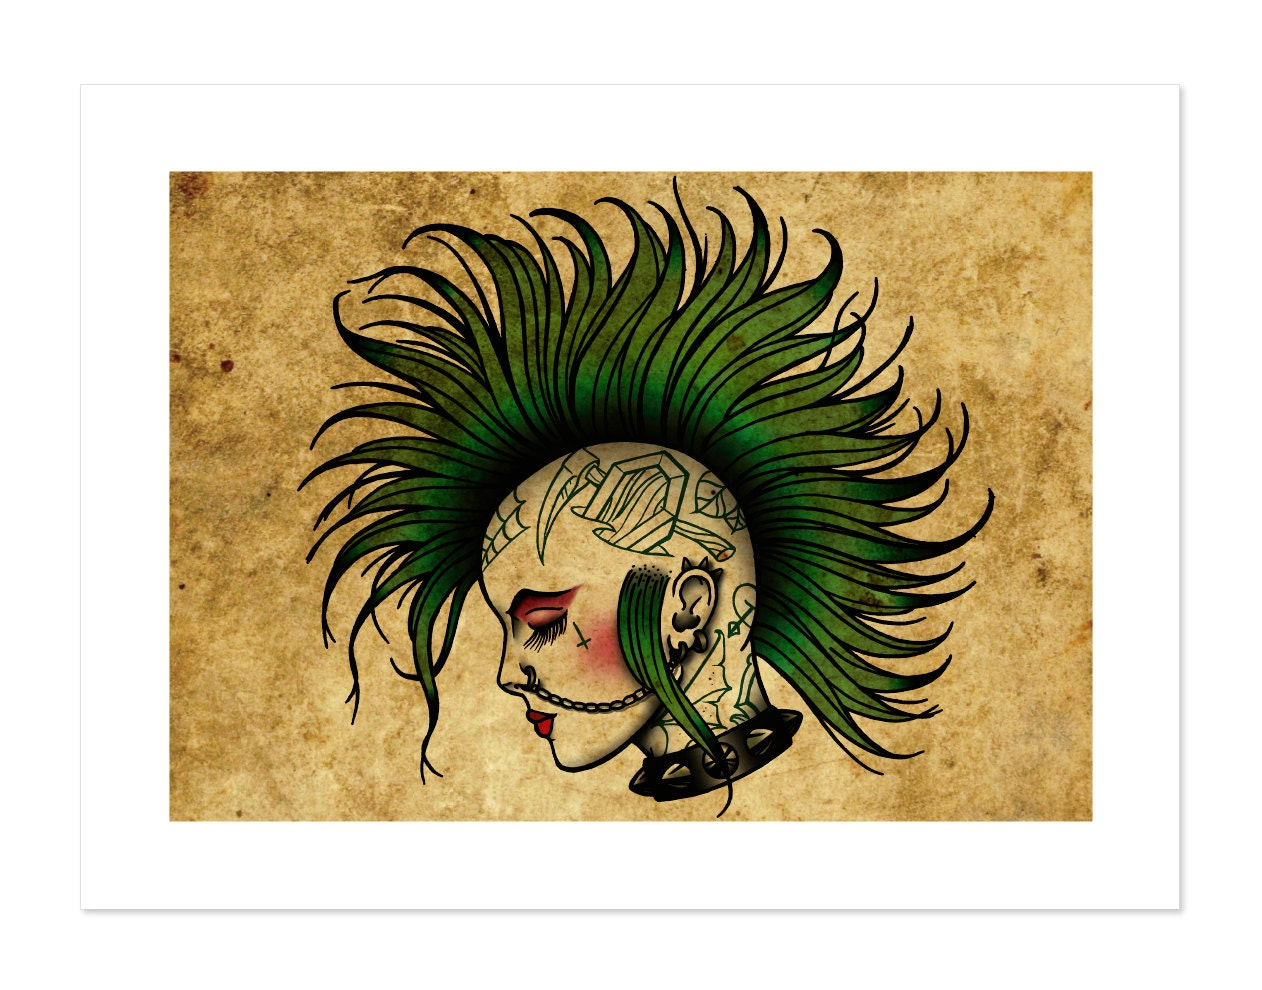 Iron On Patch Girly Skull Derby Rockabilly Punk Tattoo | eBay |Punk Girl Tattoo Girly